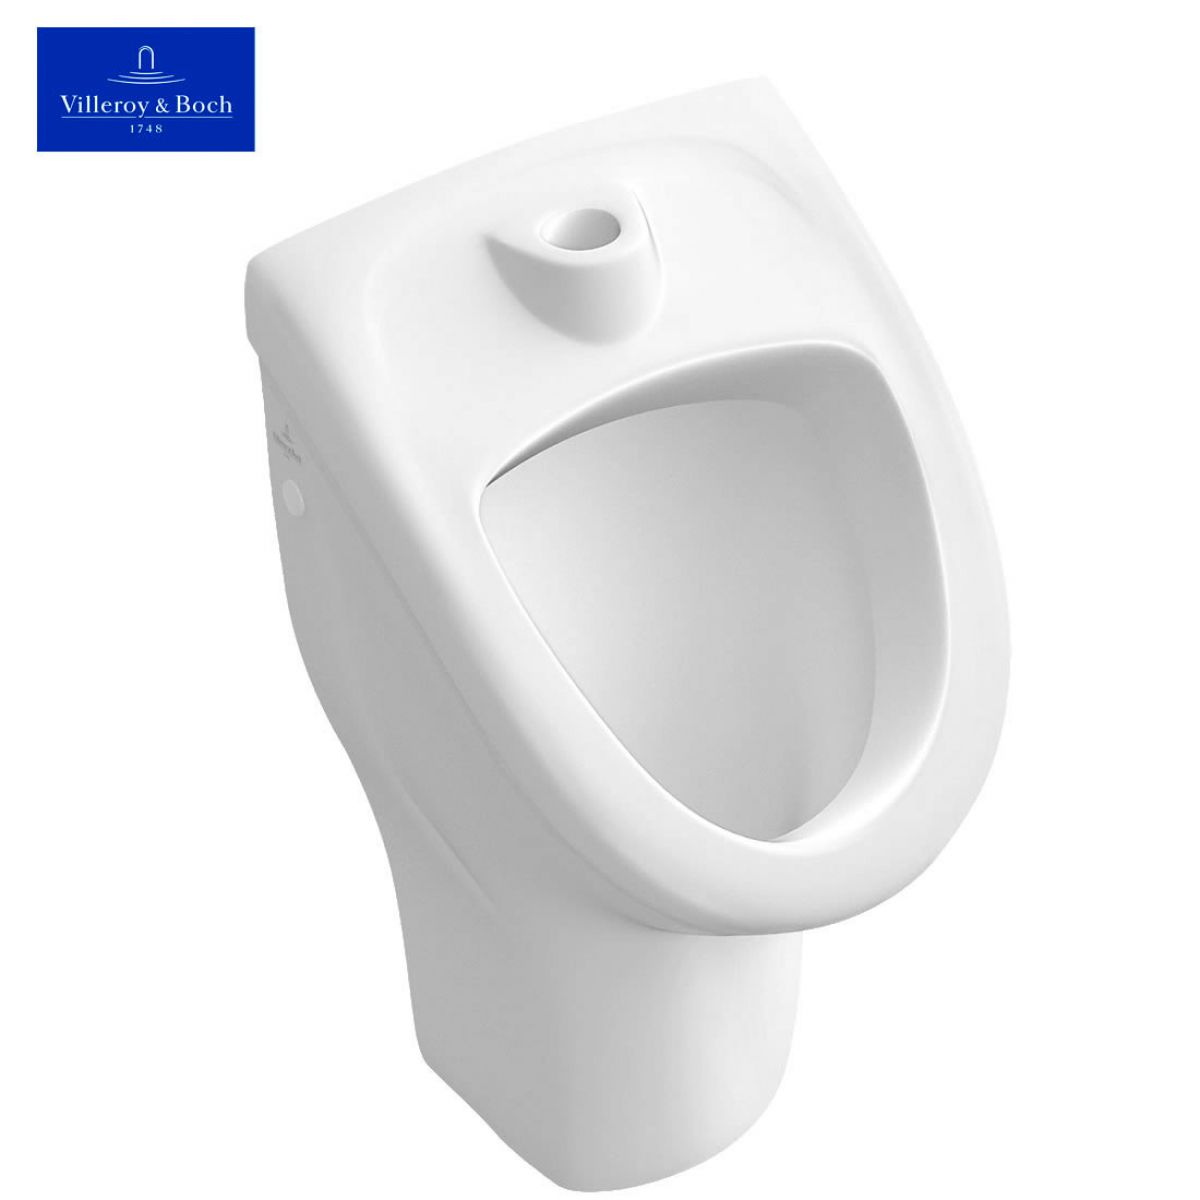 villeroy boch o novo siphonic urinal uk bathrooms. Black Bedroom Furniture Sets. Home Design Ideas